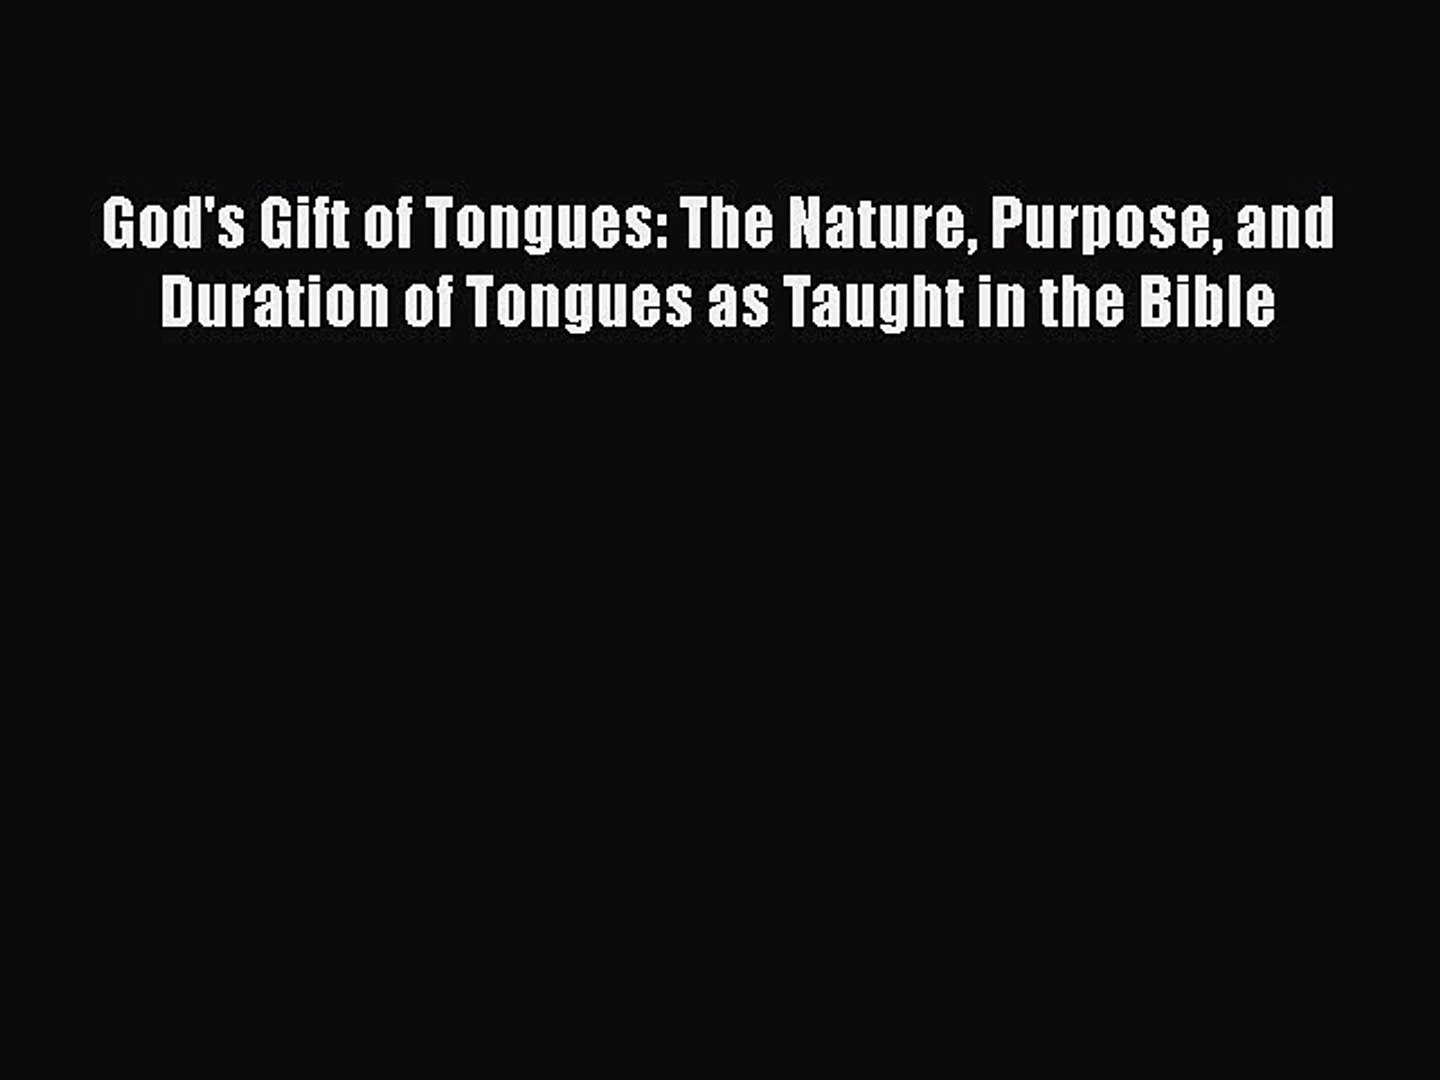 Ebook God's Gift of Tongues: The Nature Purpose and Duration of Tongues as Taught in the Bible